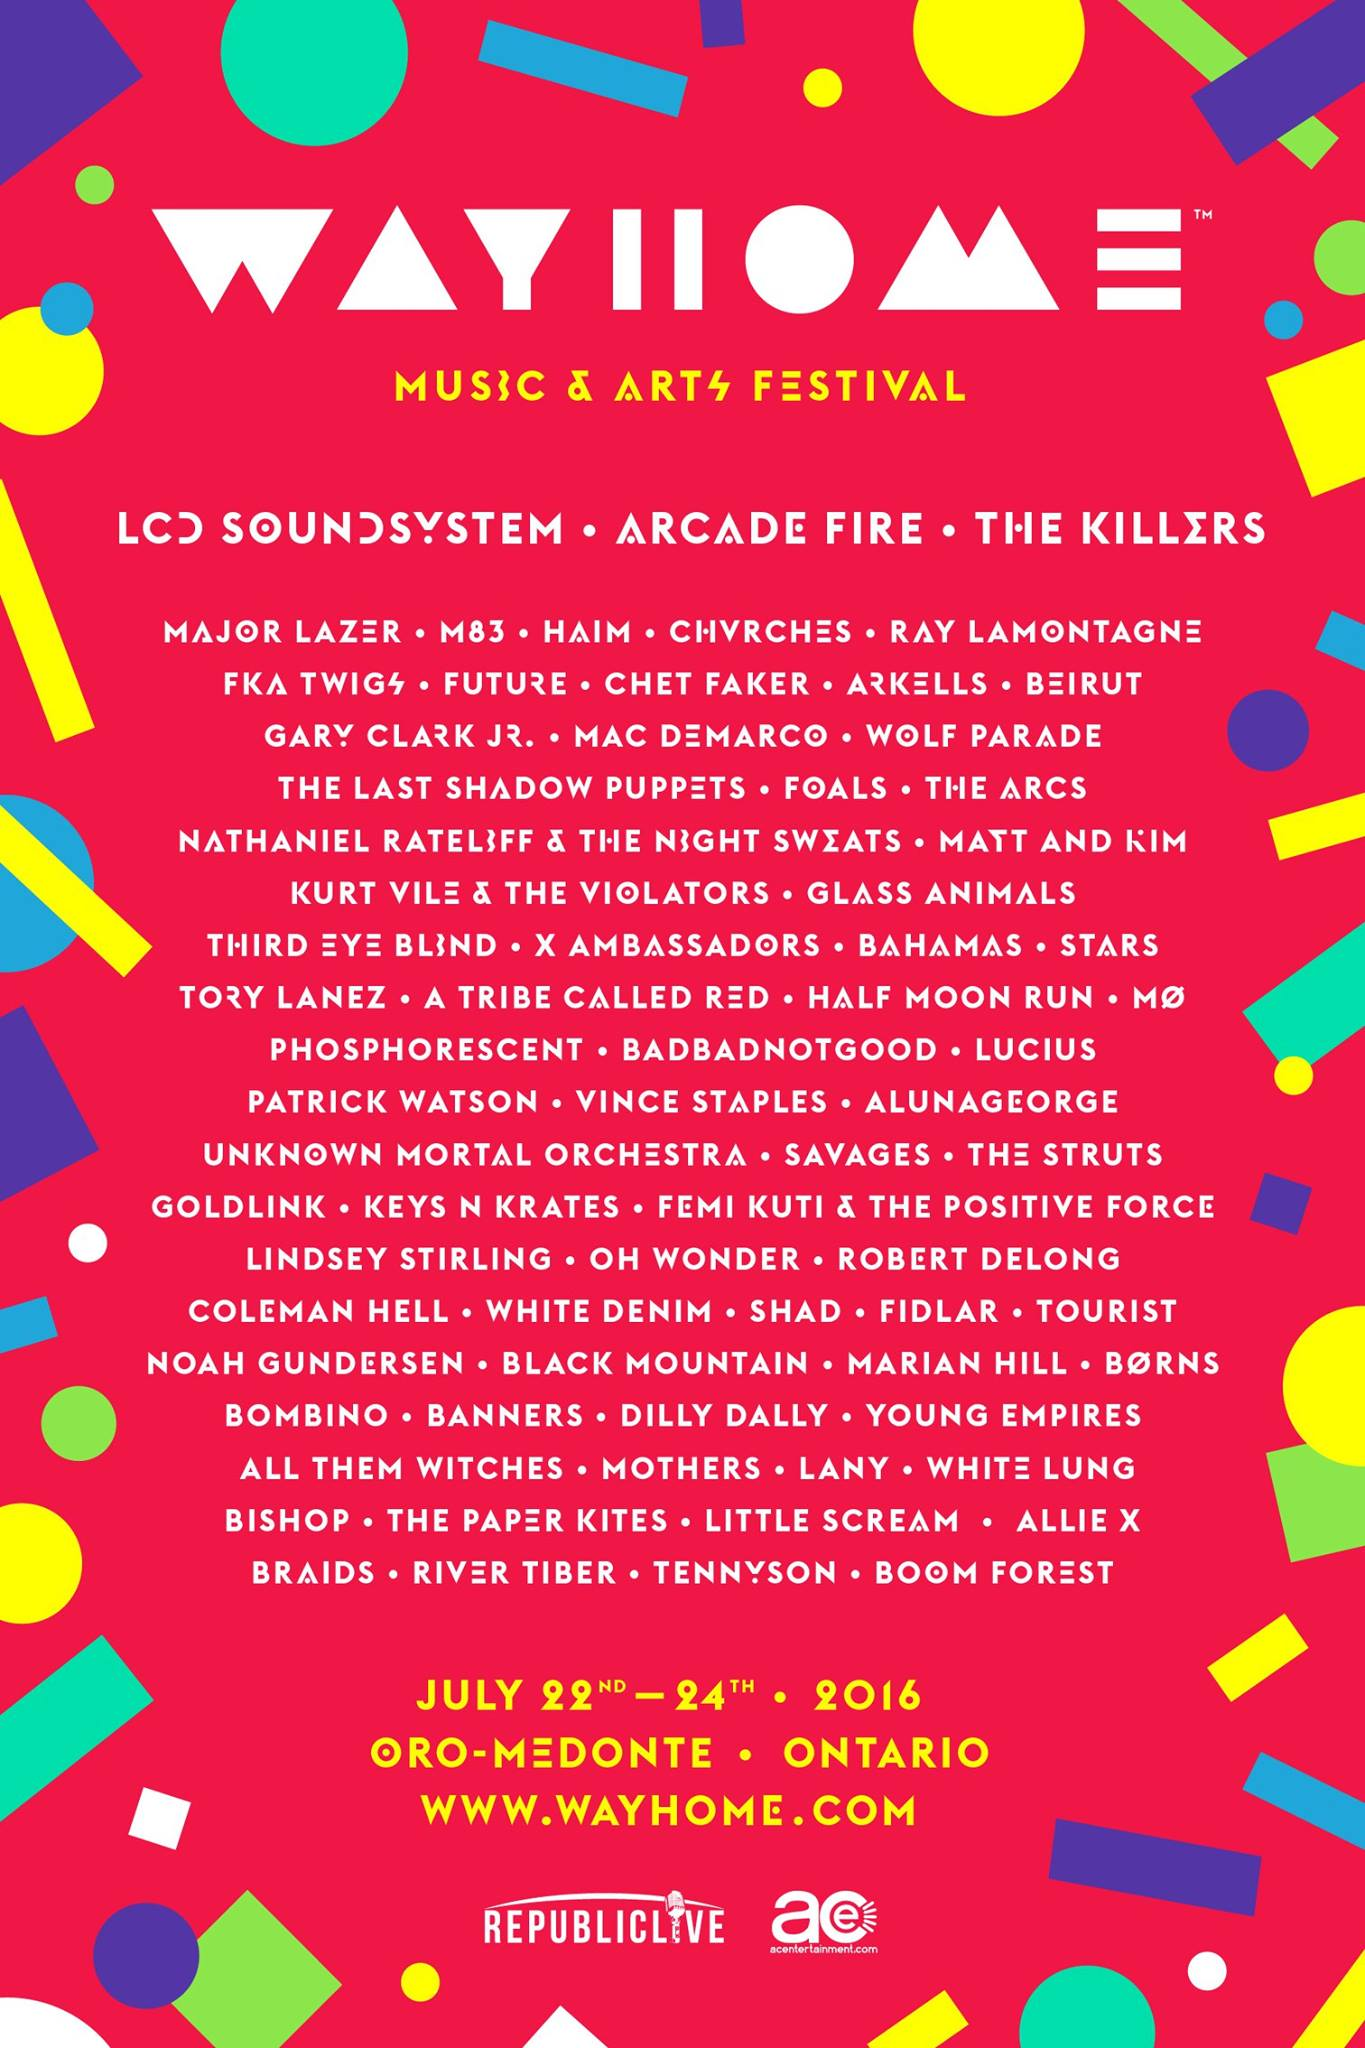 have these bunch of acts been ruled out of the splendour